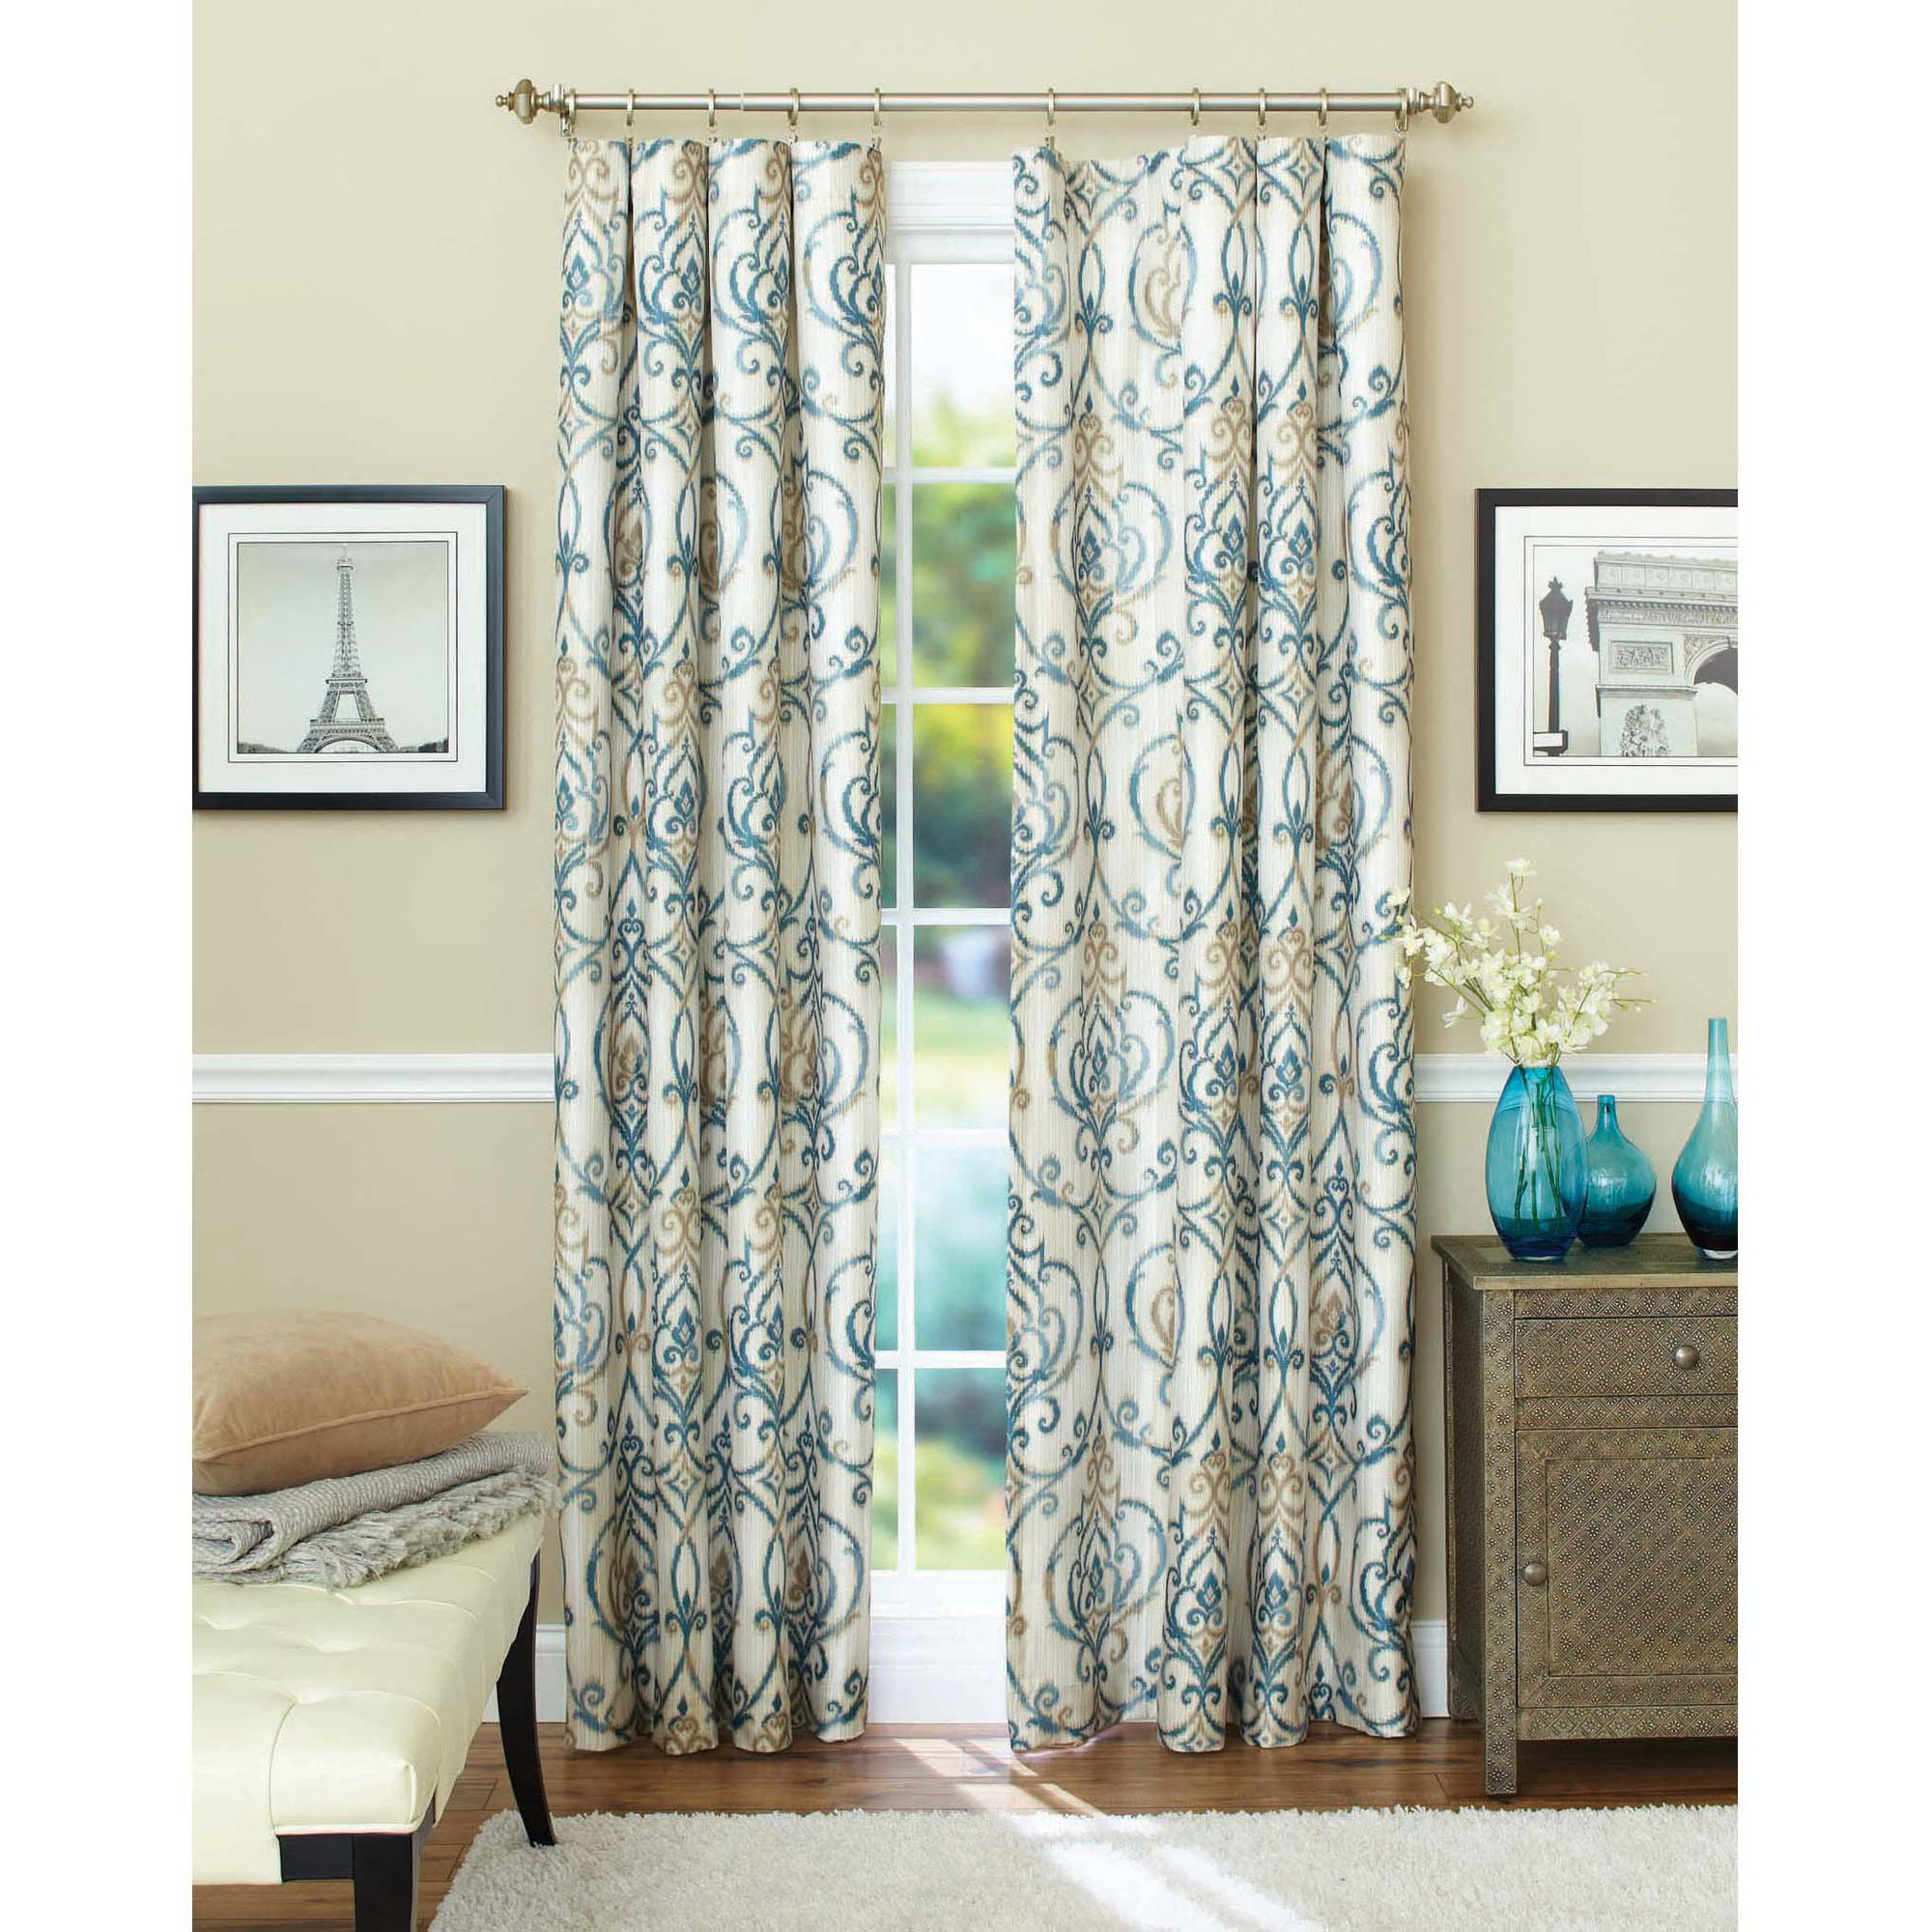 Walmart Curtains For Living Room Alluring Better Homes And Gardens Ikat Scroll Curtain Panel  Walmart Decorating Inspiration